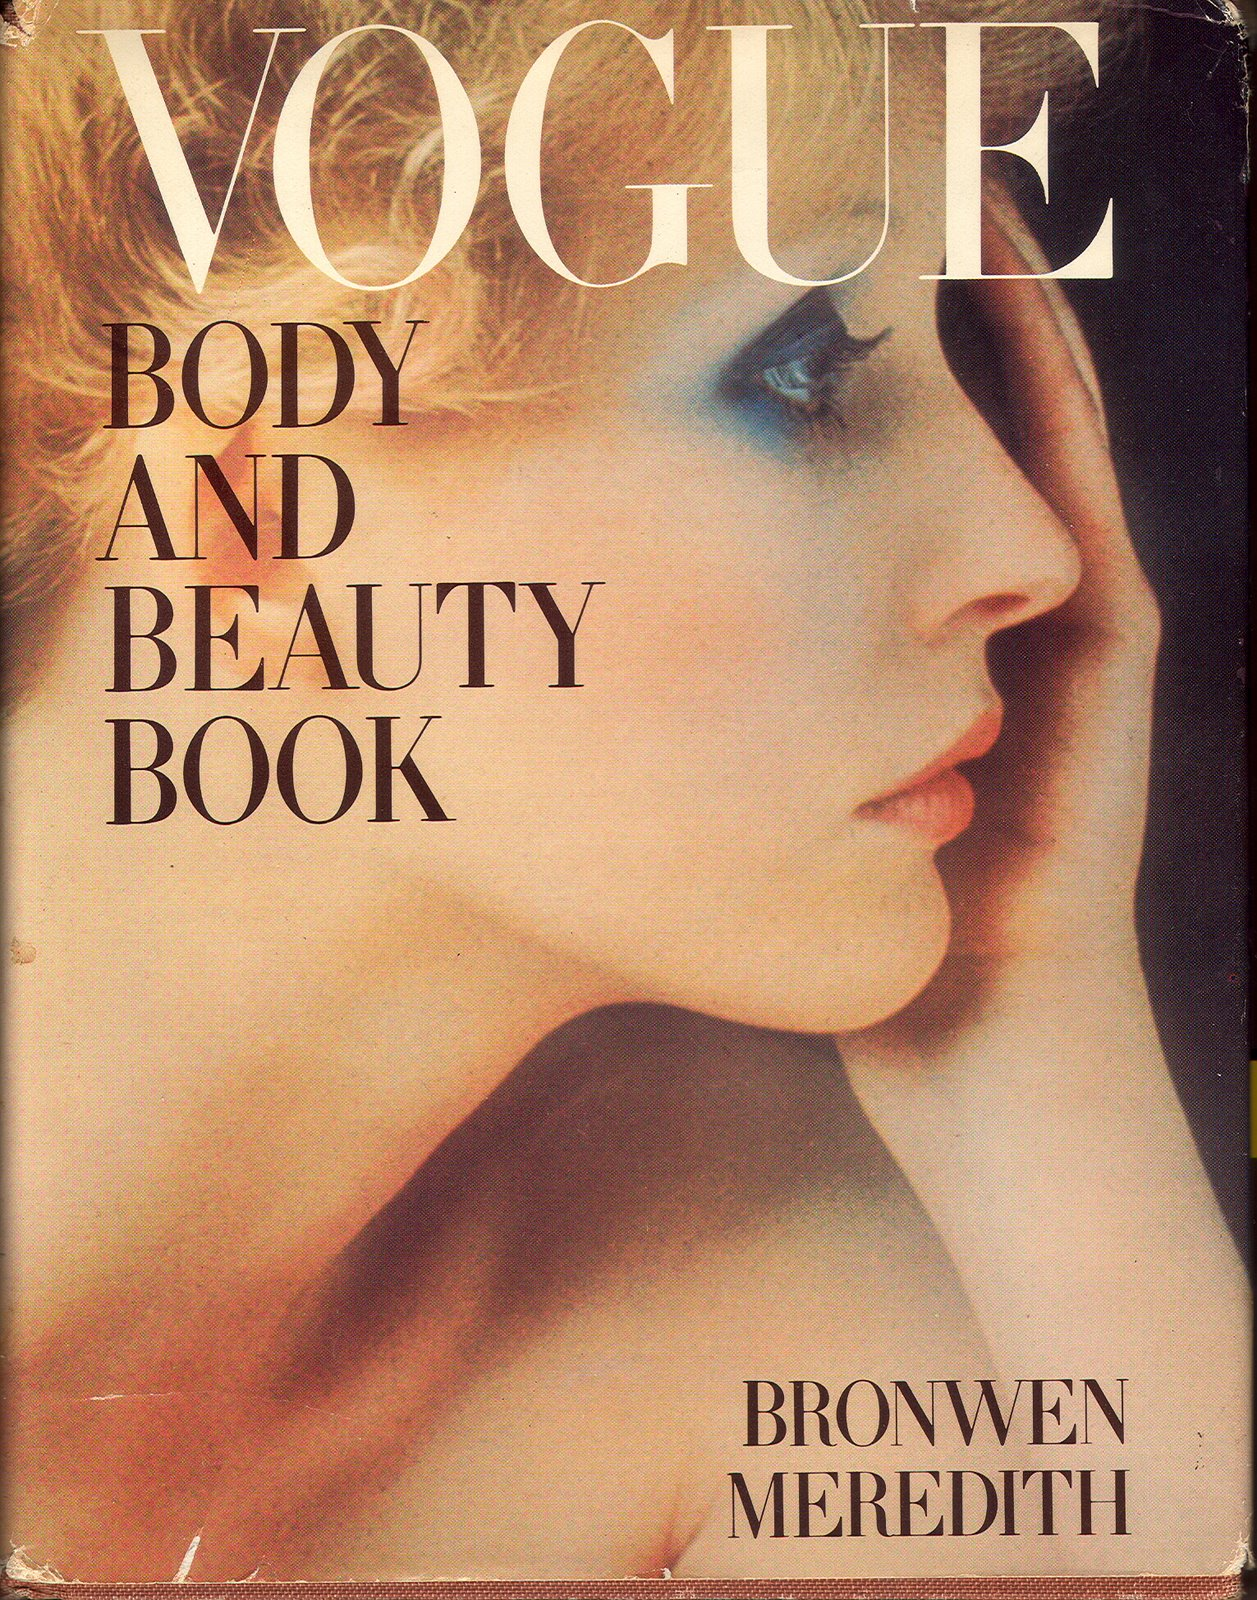 [Vogue+Body+and+Beauty+Book]